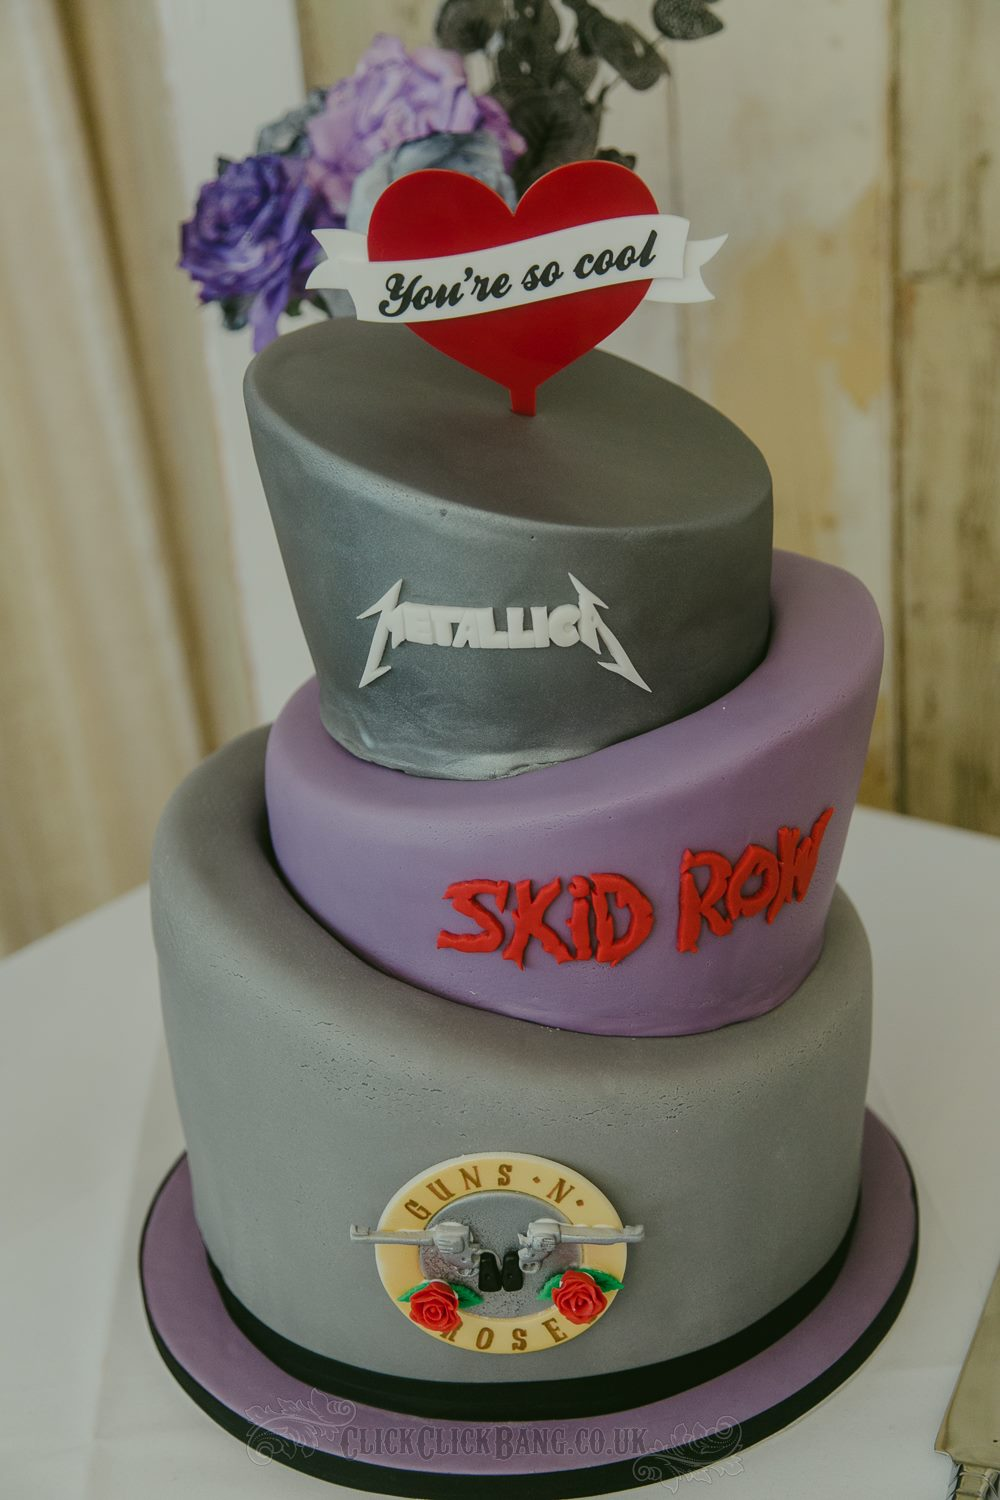 wedstock rockn n roll wedding cake